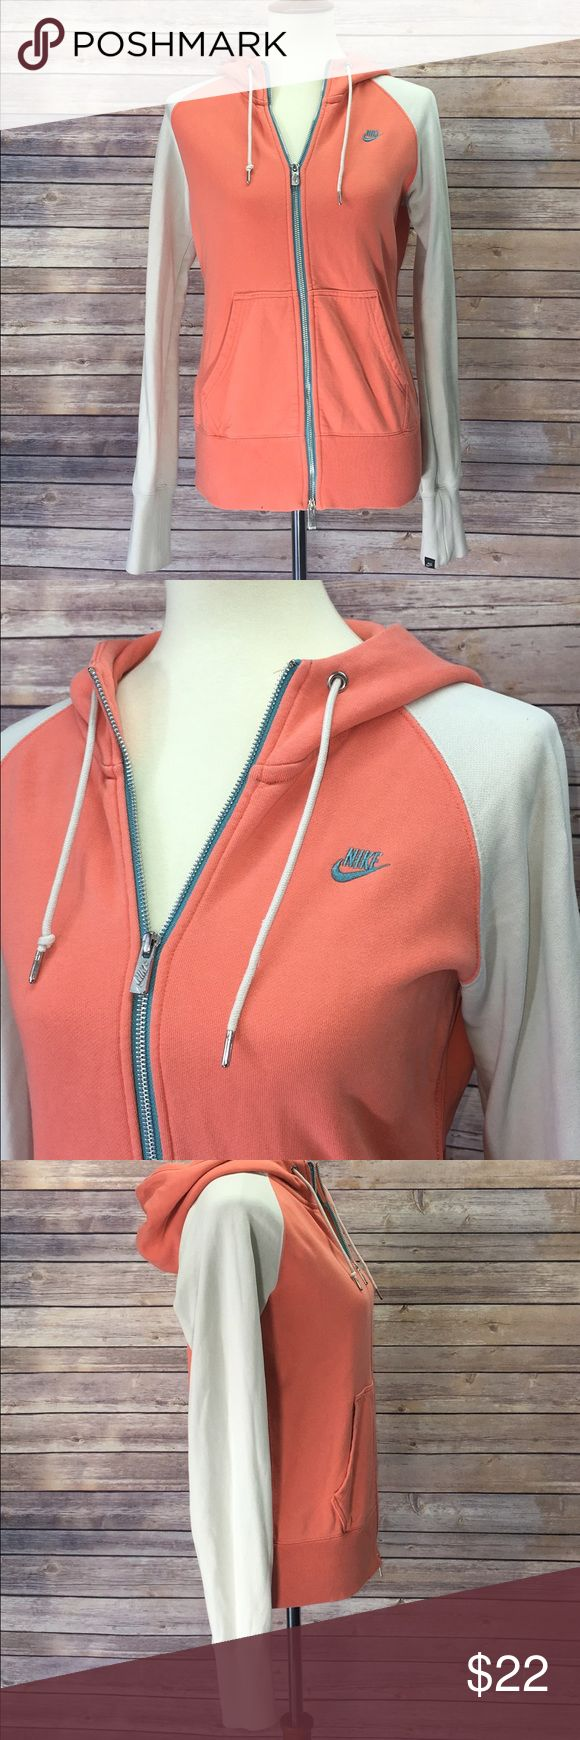 "Nike SportsWear Women's Zip Up Hoodie Size Medium 🔹Colors: Peach/Turquoise/Cream                                    🔹Worn In But In Good Condition (All Details In Pics)      🔹100% Cotton                                                                    🔹Length: Shoulder to Bottom 24.5"" (Laid Flat)               🔹Armpit to Armpit: 20"" (Laid Flat) Nike Tops Sweatshirts & Hoodies"